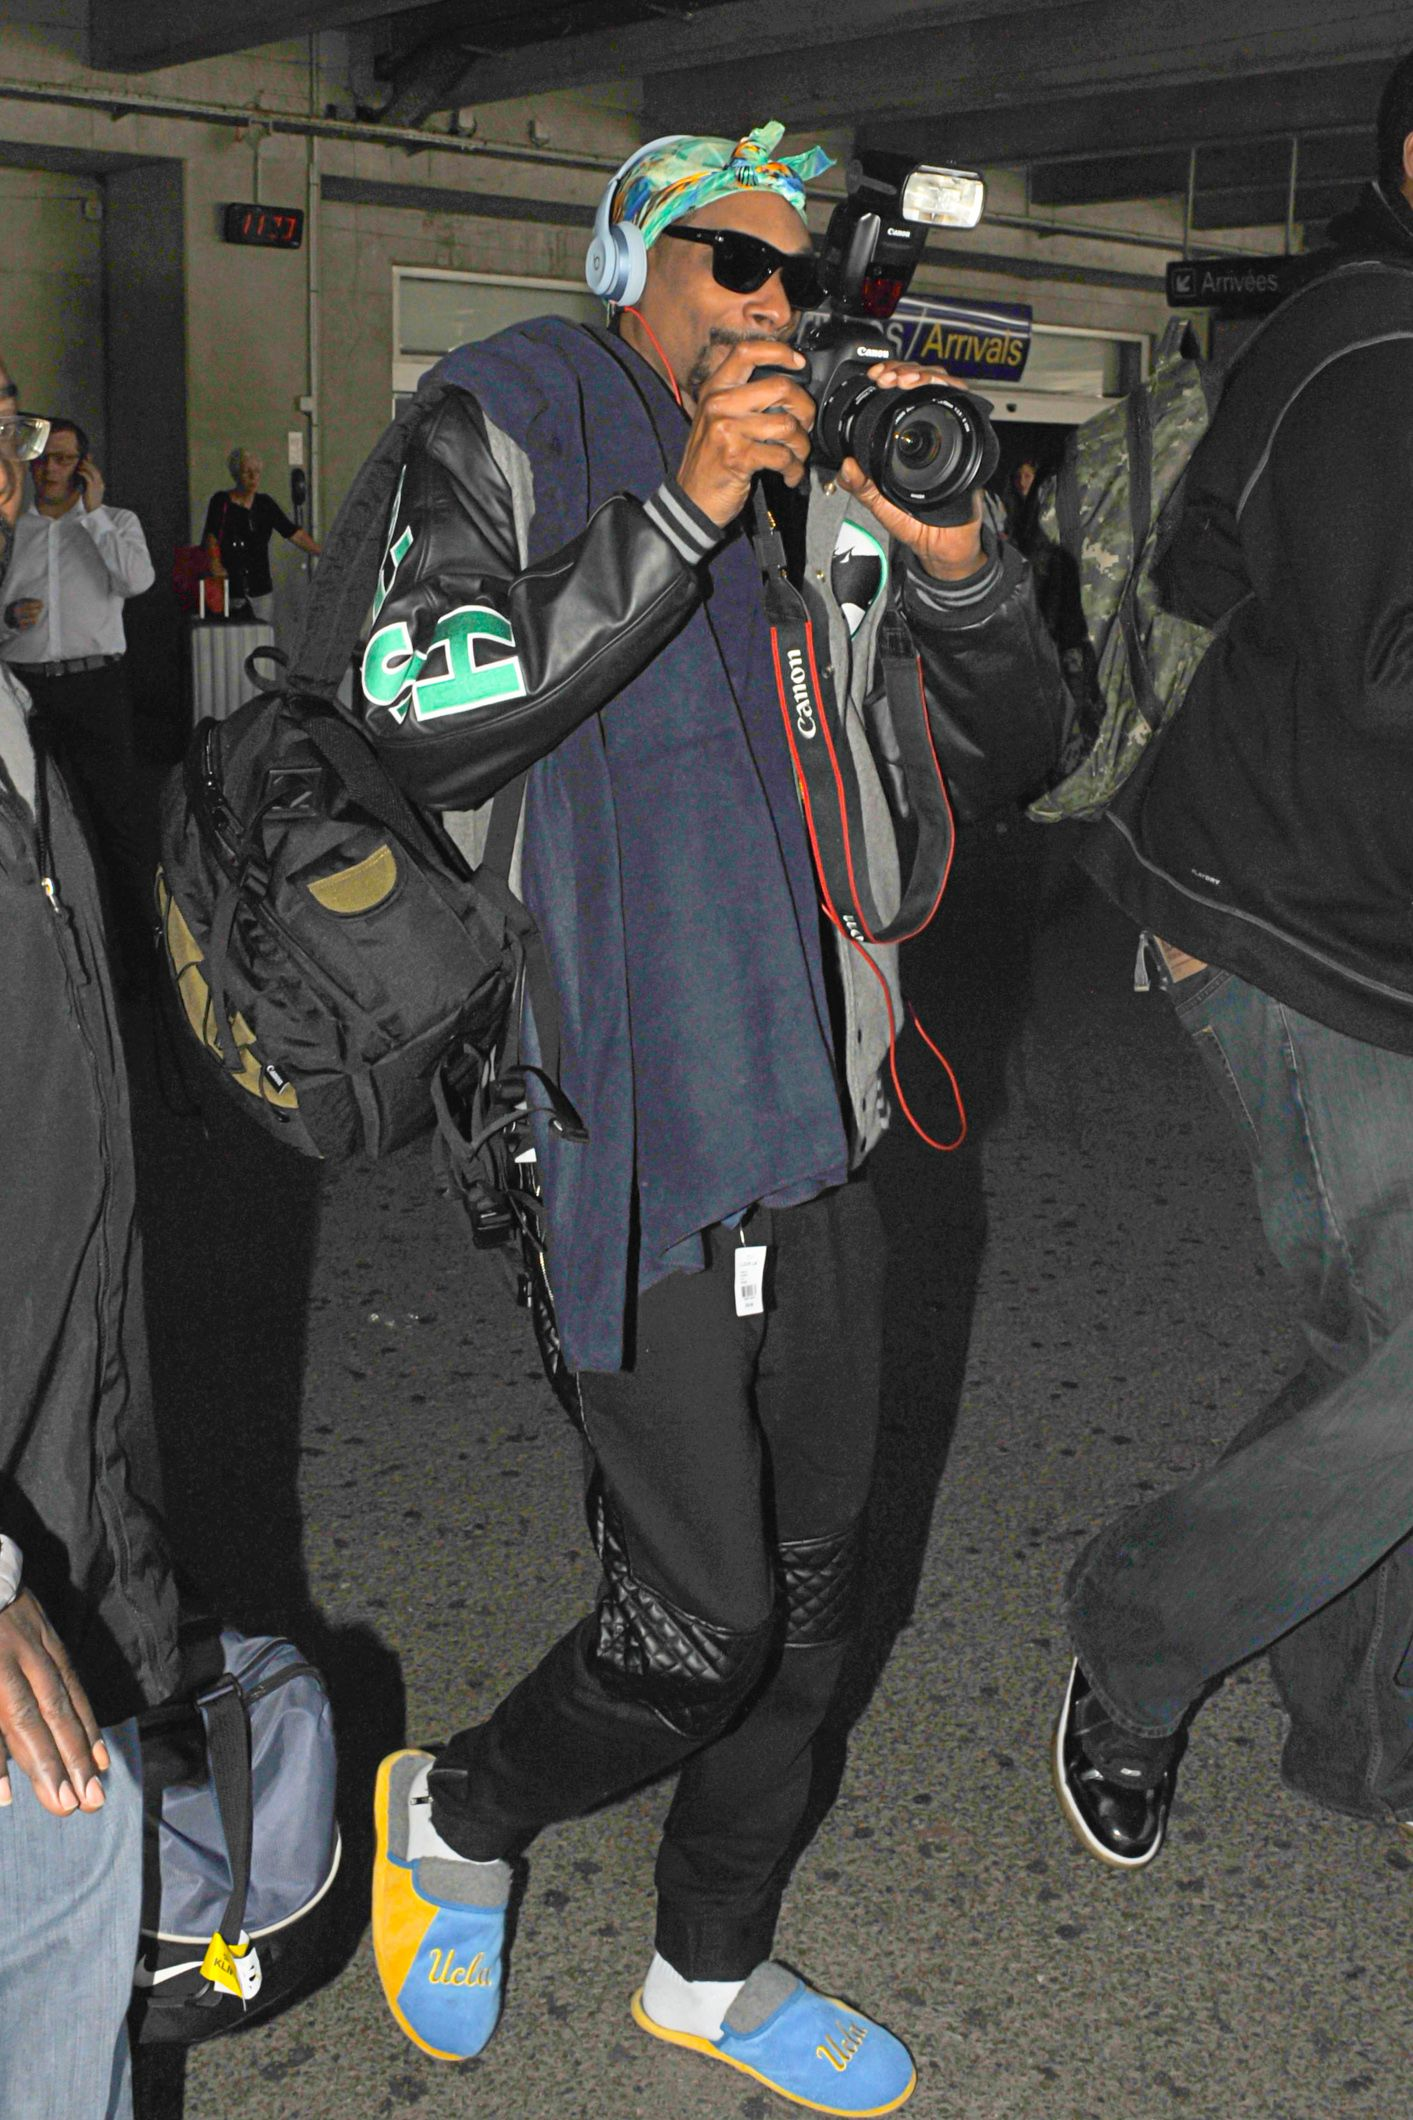 Snoop Dogg Snoop Dogg gave the paps a taste of their own medicine by snapping photos of them. But, not without someone managing to capture the rapper in a pair of yellow and blue UCLA slippers.